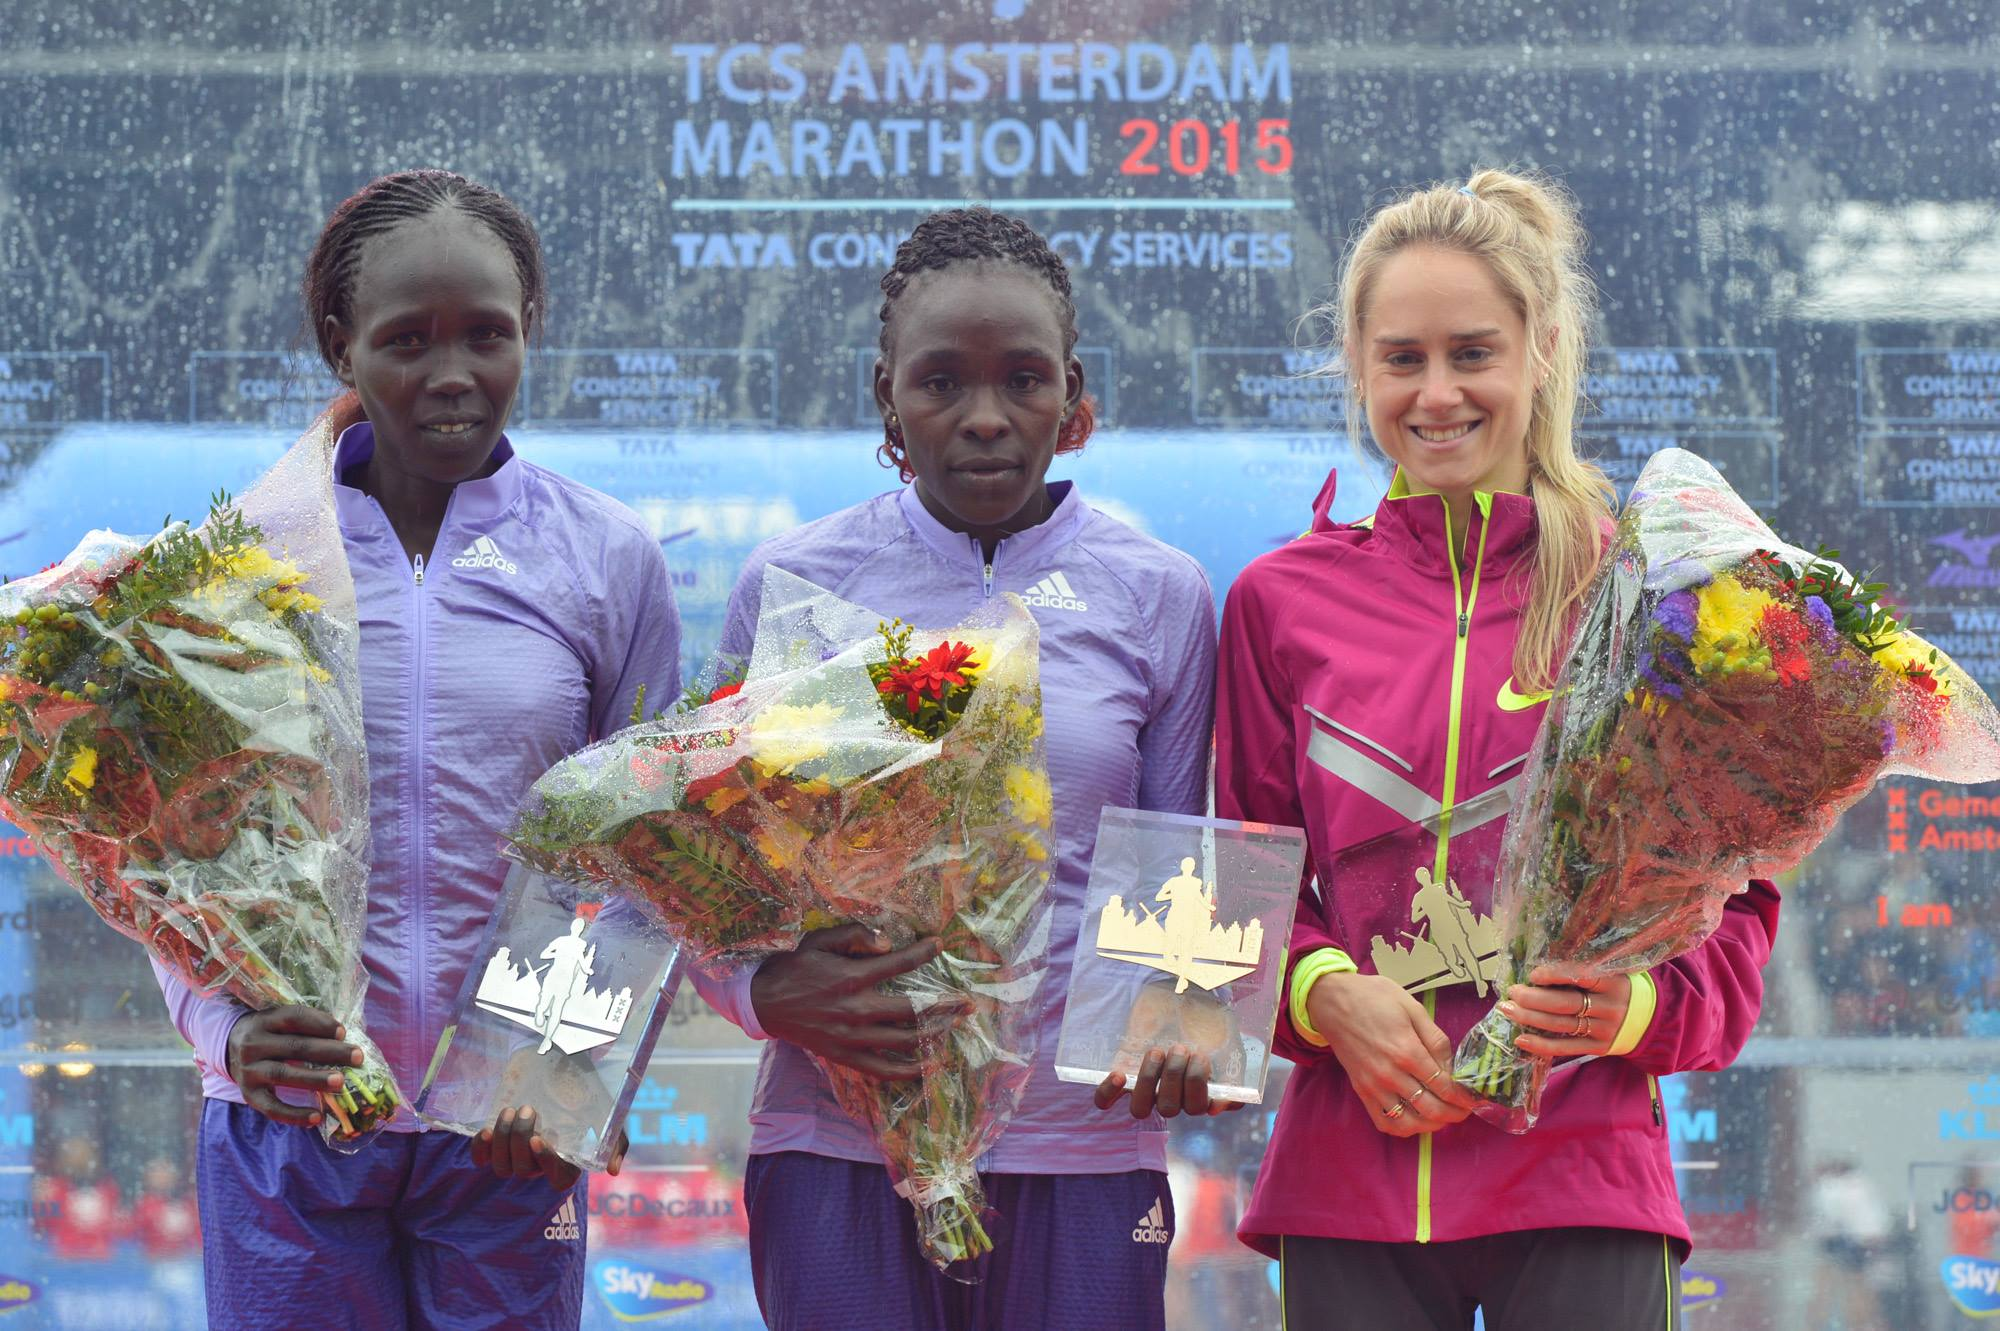 Milly Clark 3rd in the Amsterdam marathon 2015 with 2:29.07